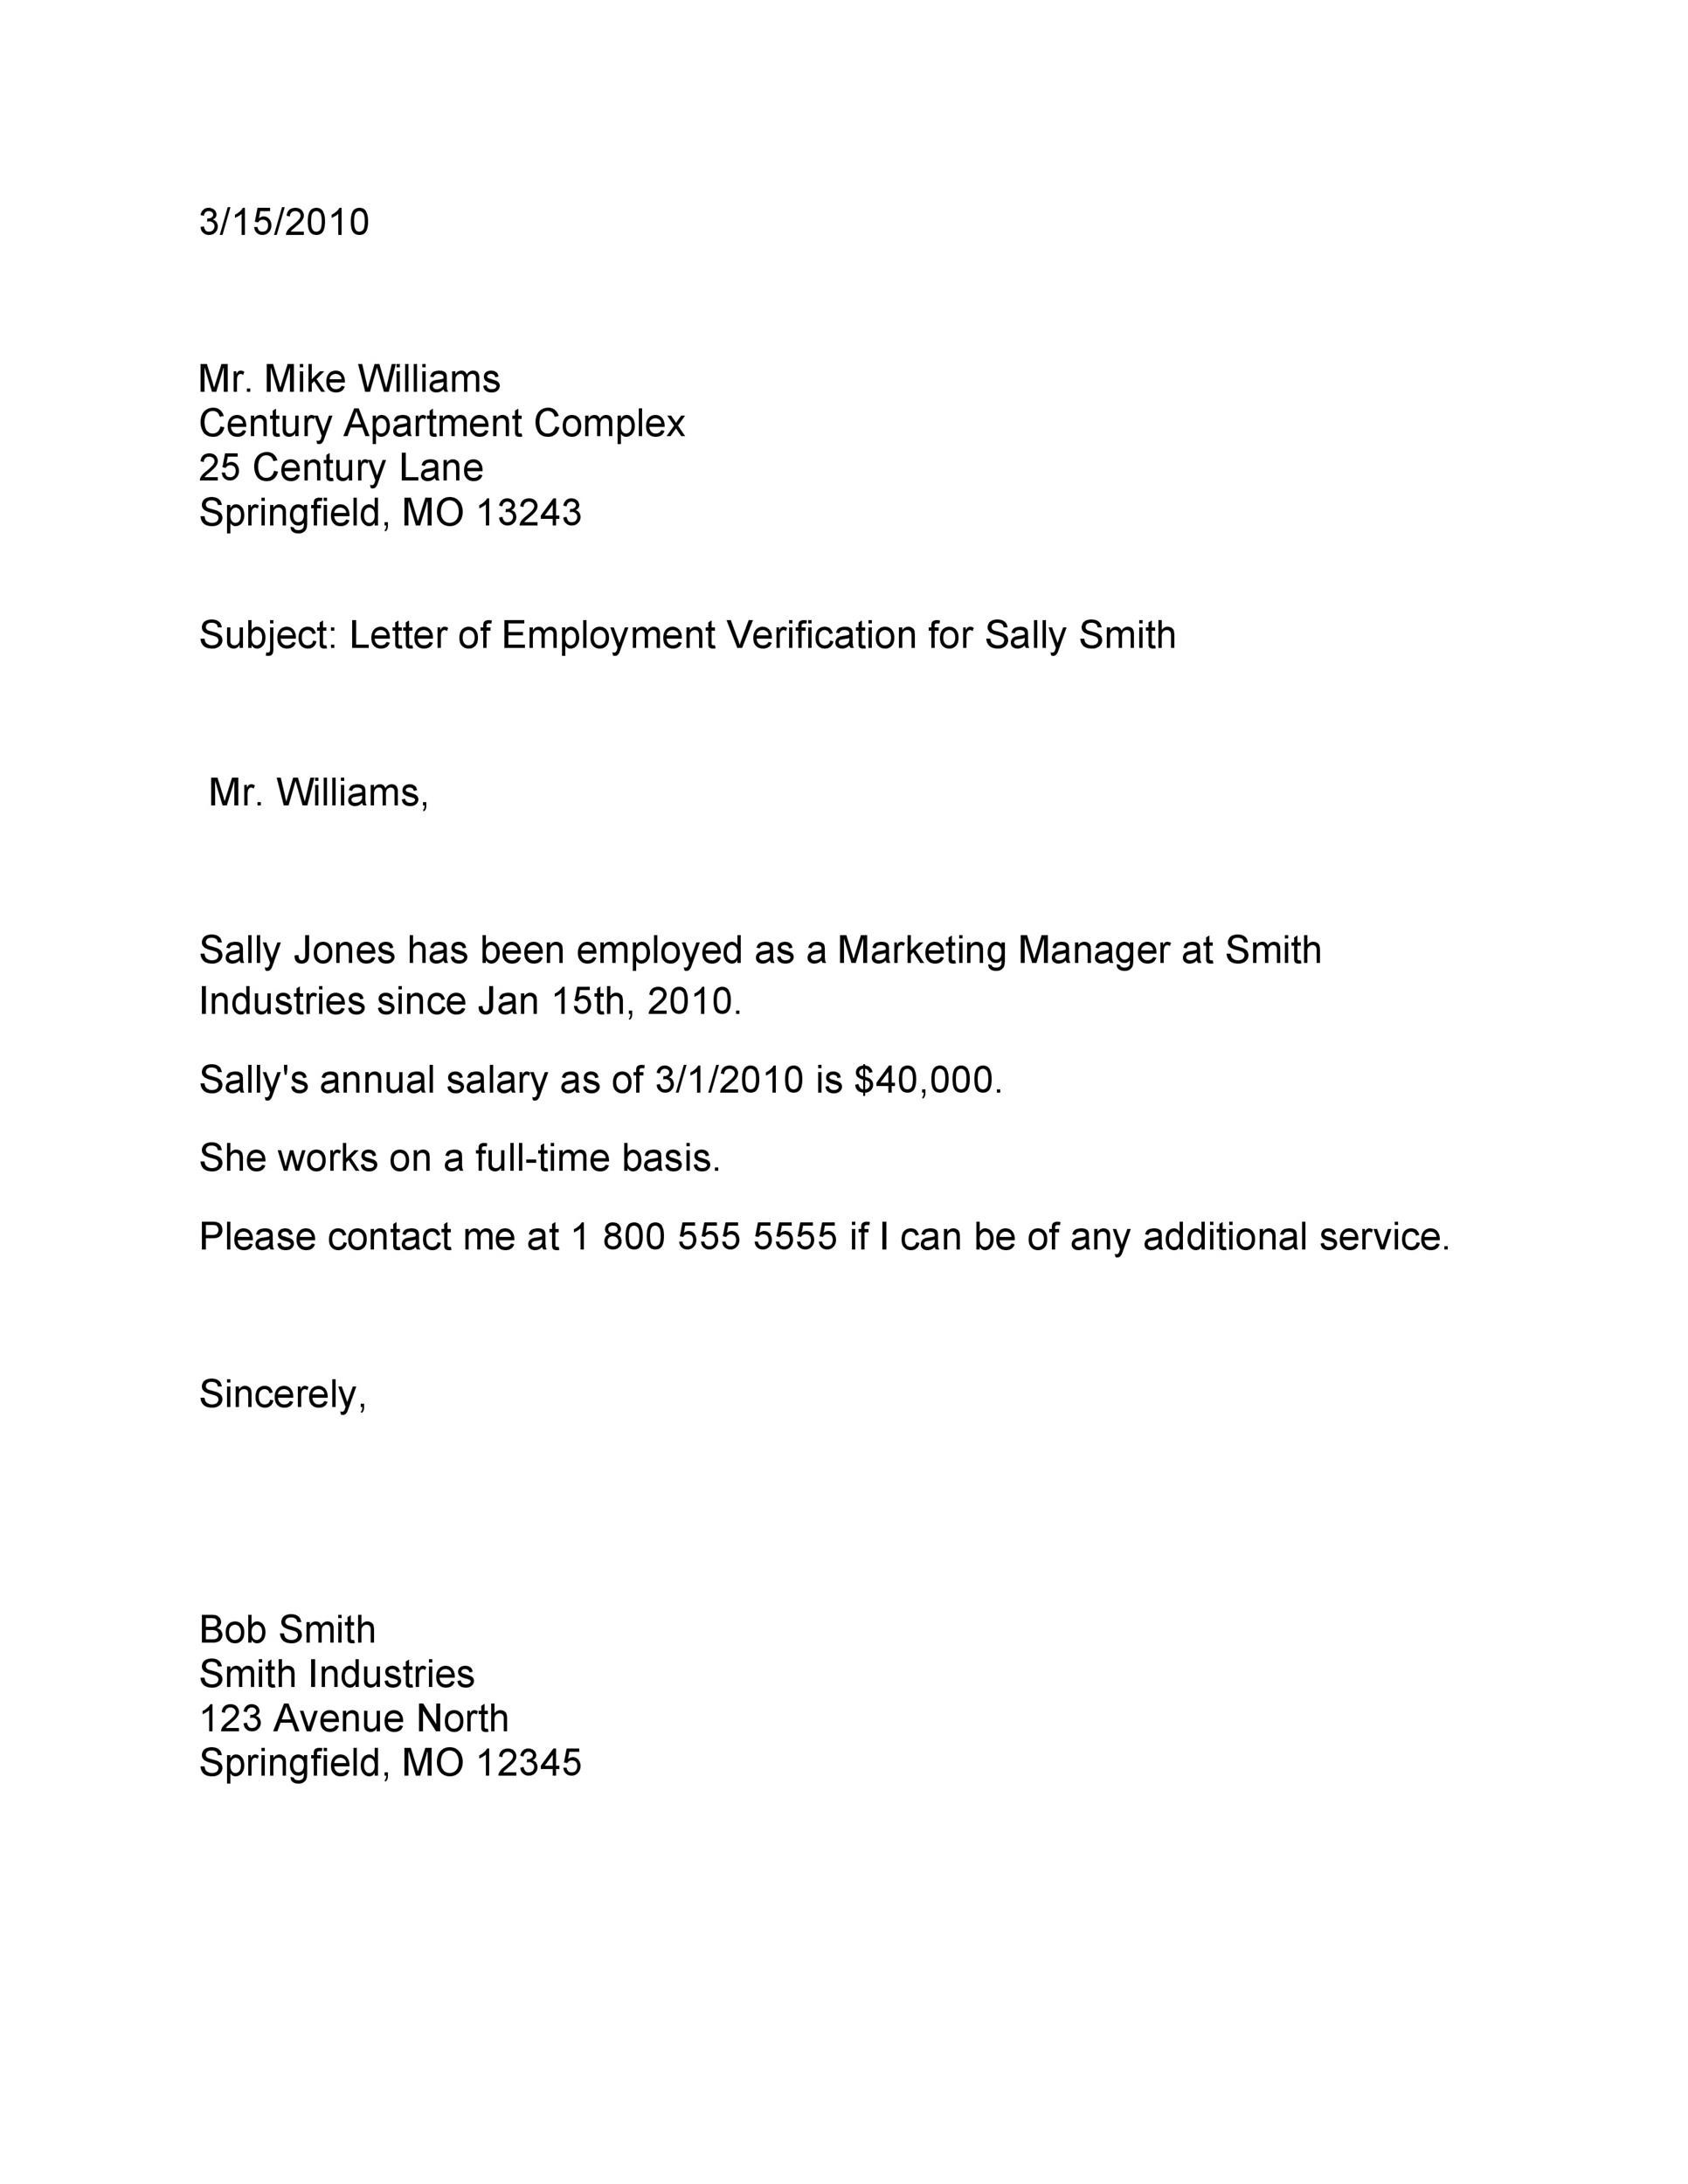 Free Proof of Employment Letter Template 05